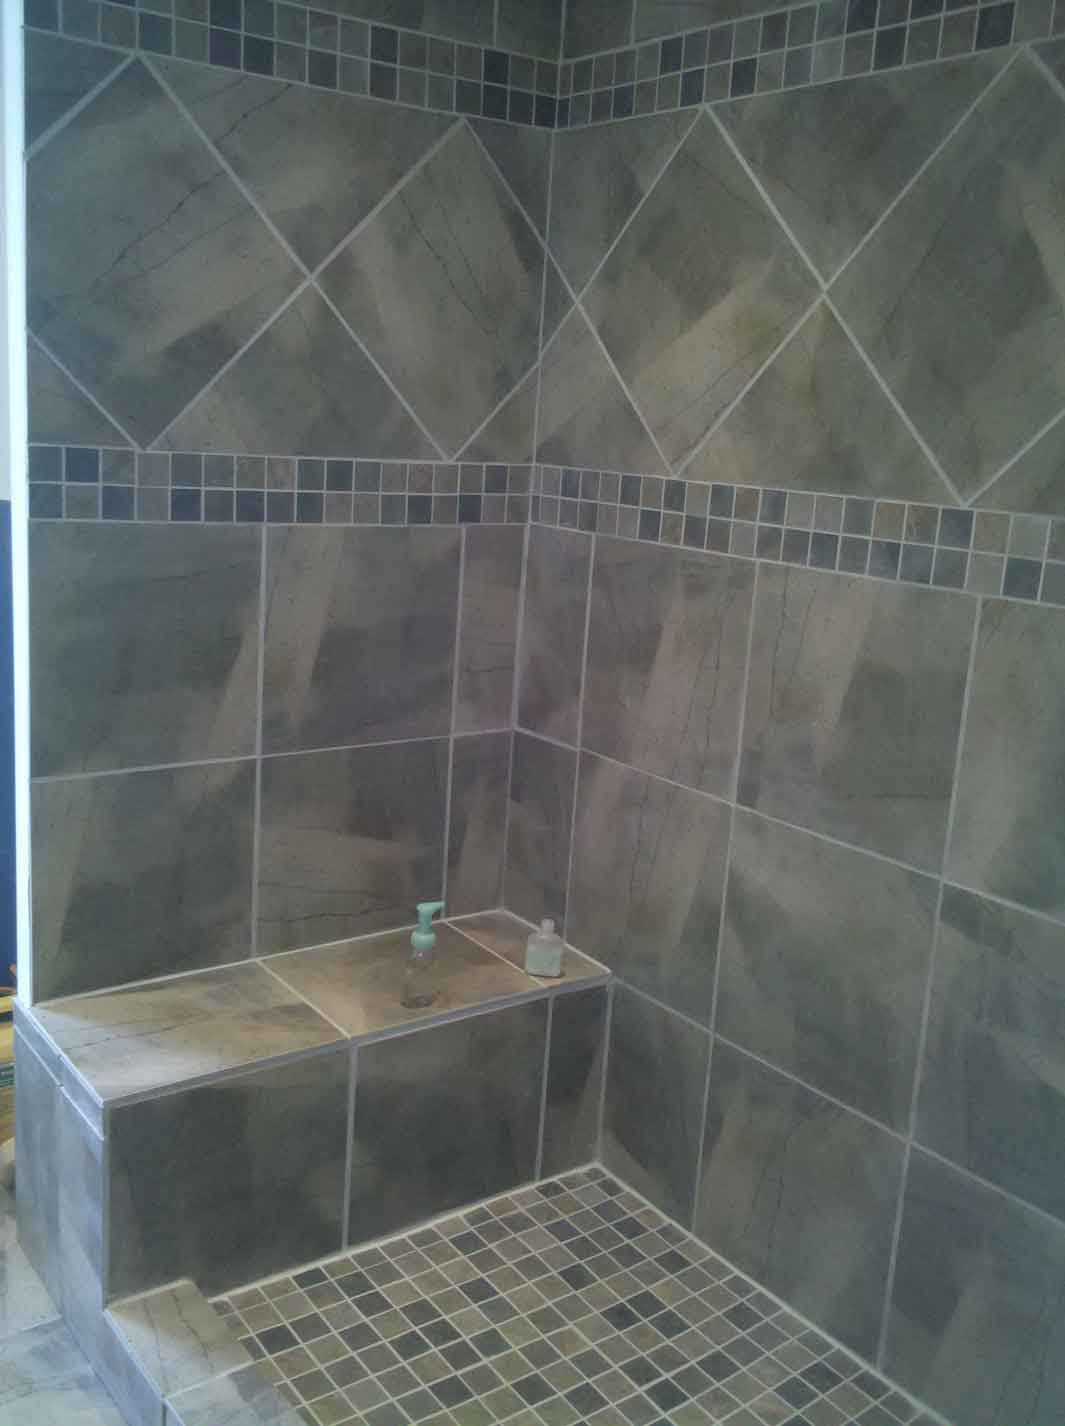 best tile for shower floor in grey and ceramic tiles for shower wall for stylish bathroom - Best Tile For Bathroom Floor